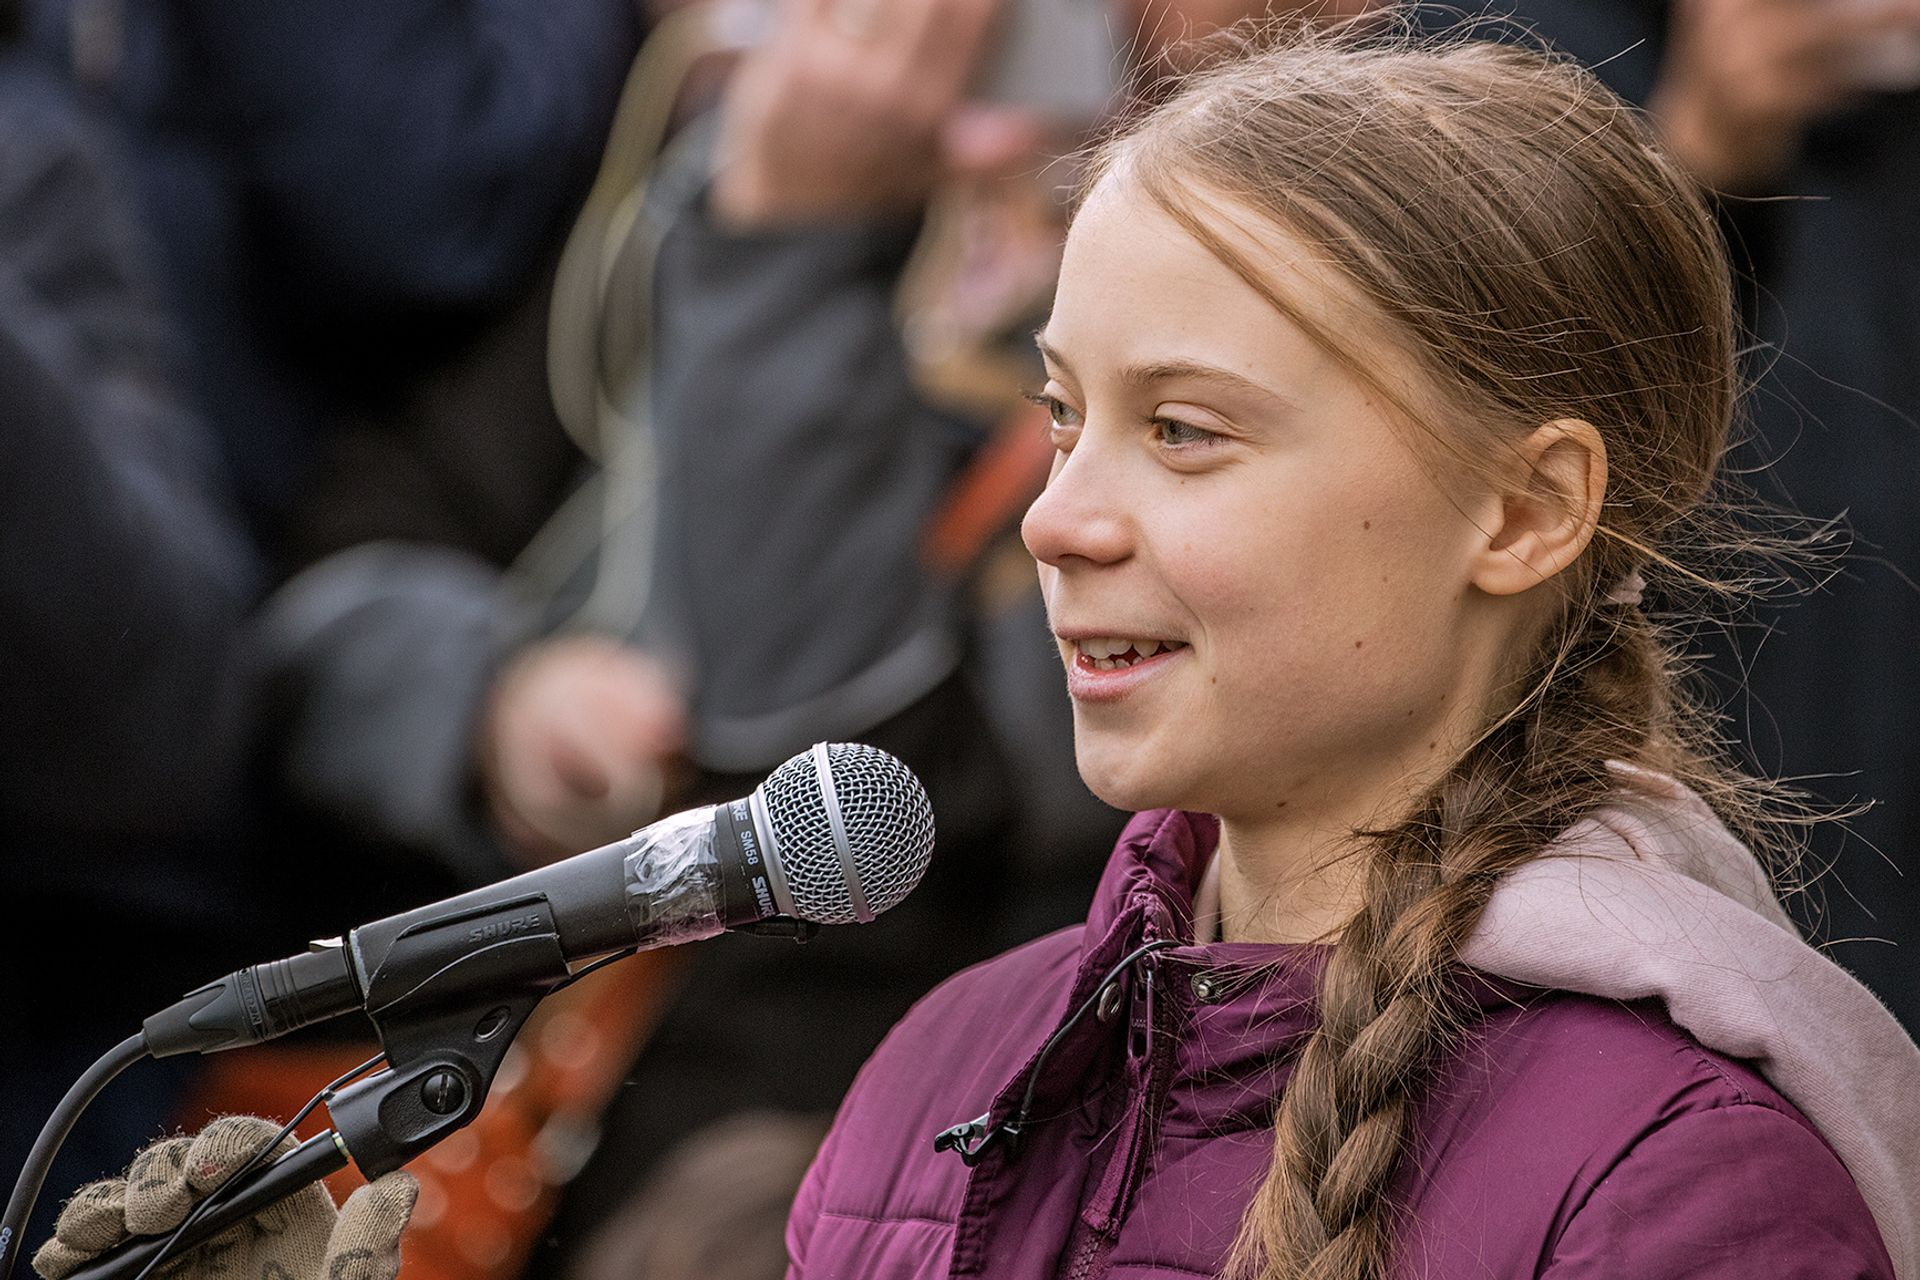 """Greta Thunberg tweeted last night that """"The 'Science' Museum just killed irony (and their own reputation)"""" over gagging order from Shell Photo: Markus Schweizer"""